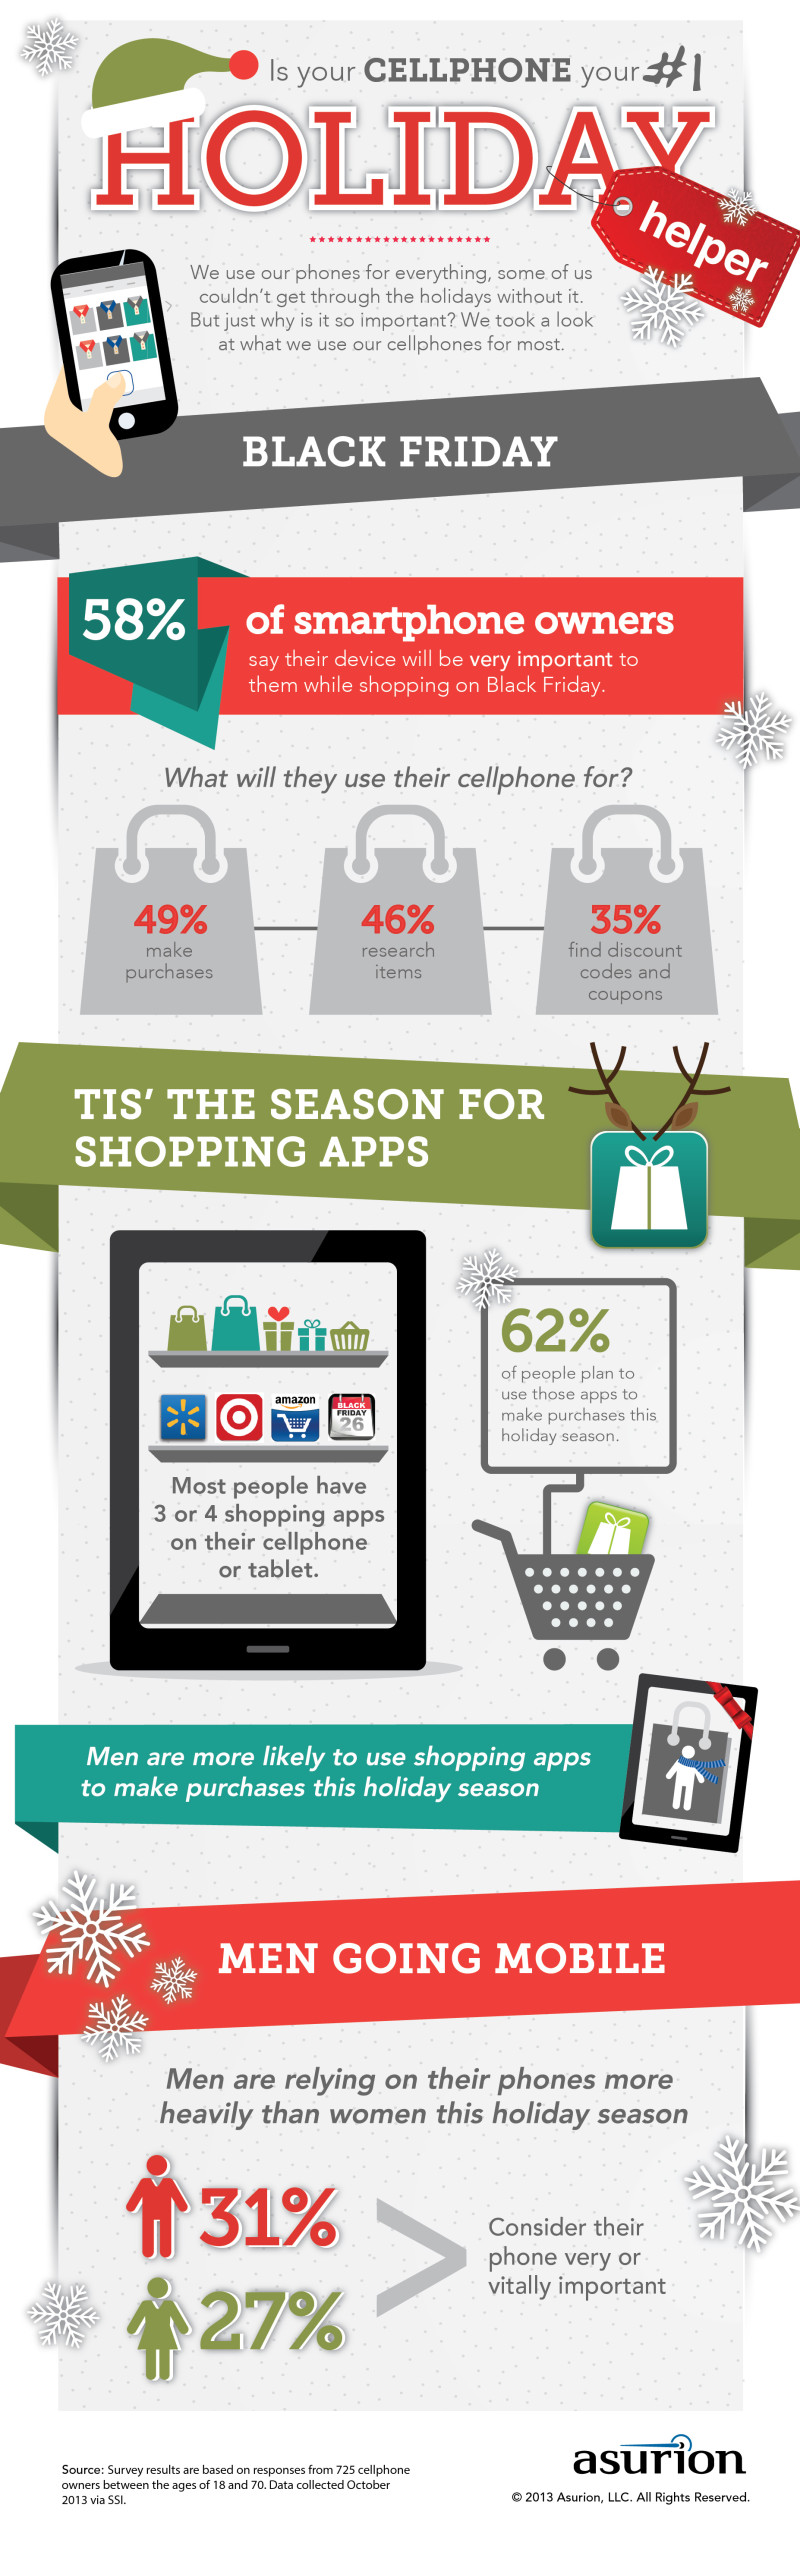 Is Your Cellphone Your #1 Holiday Helper?